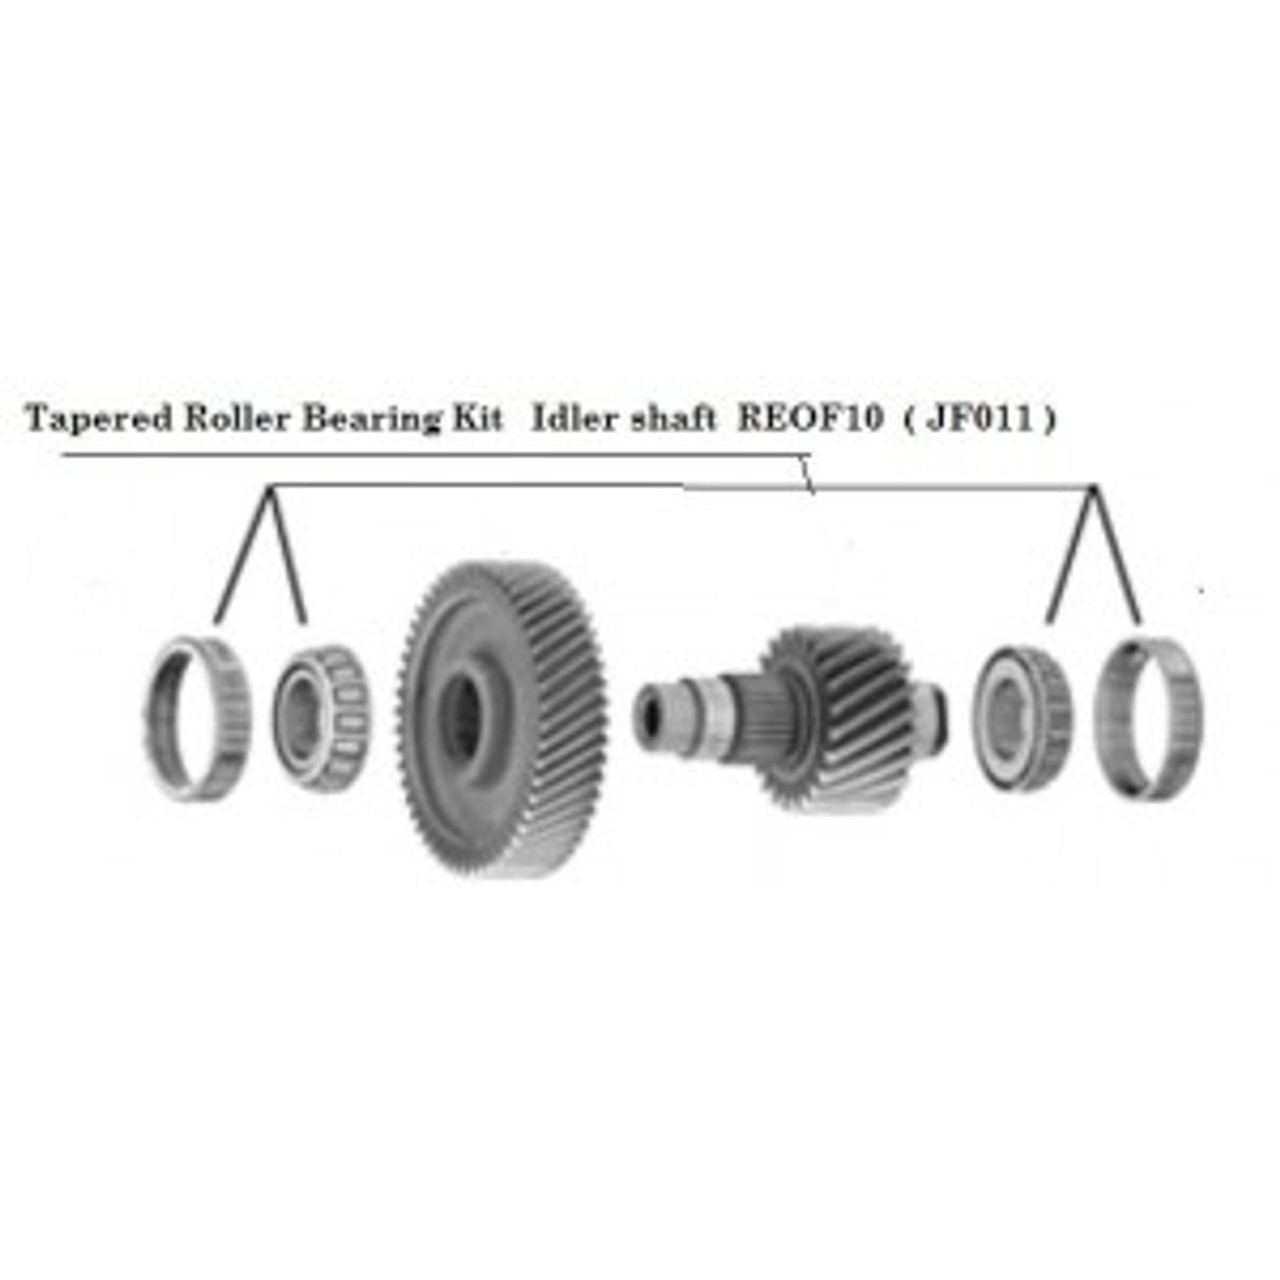 Tapered roller bearing kit JF011 4WD